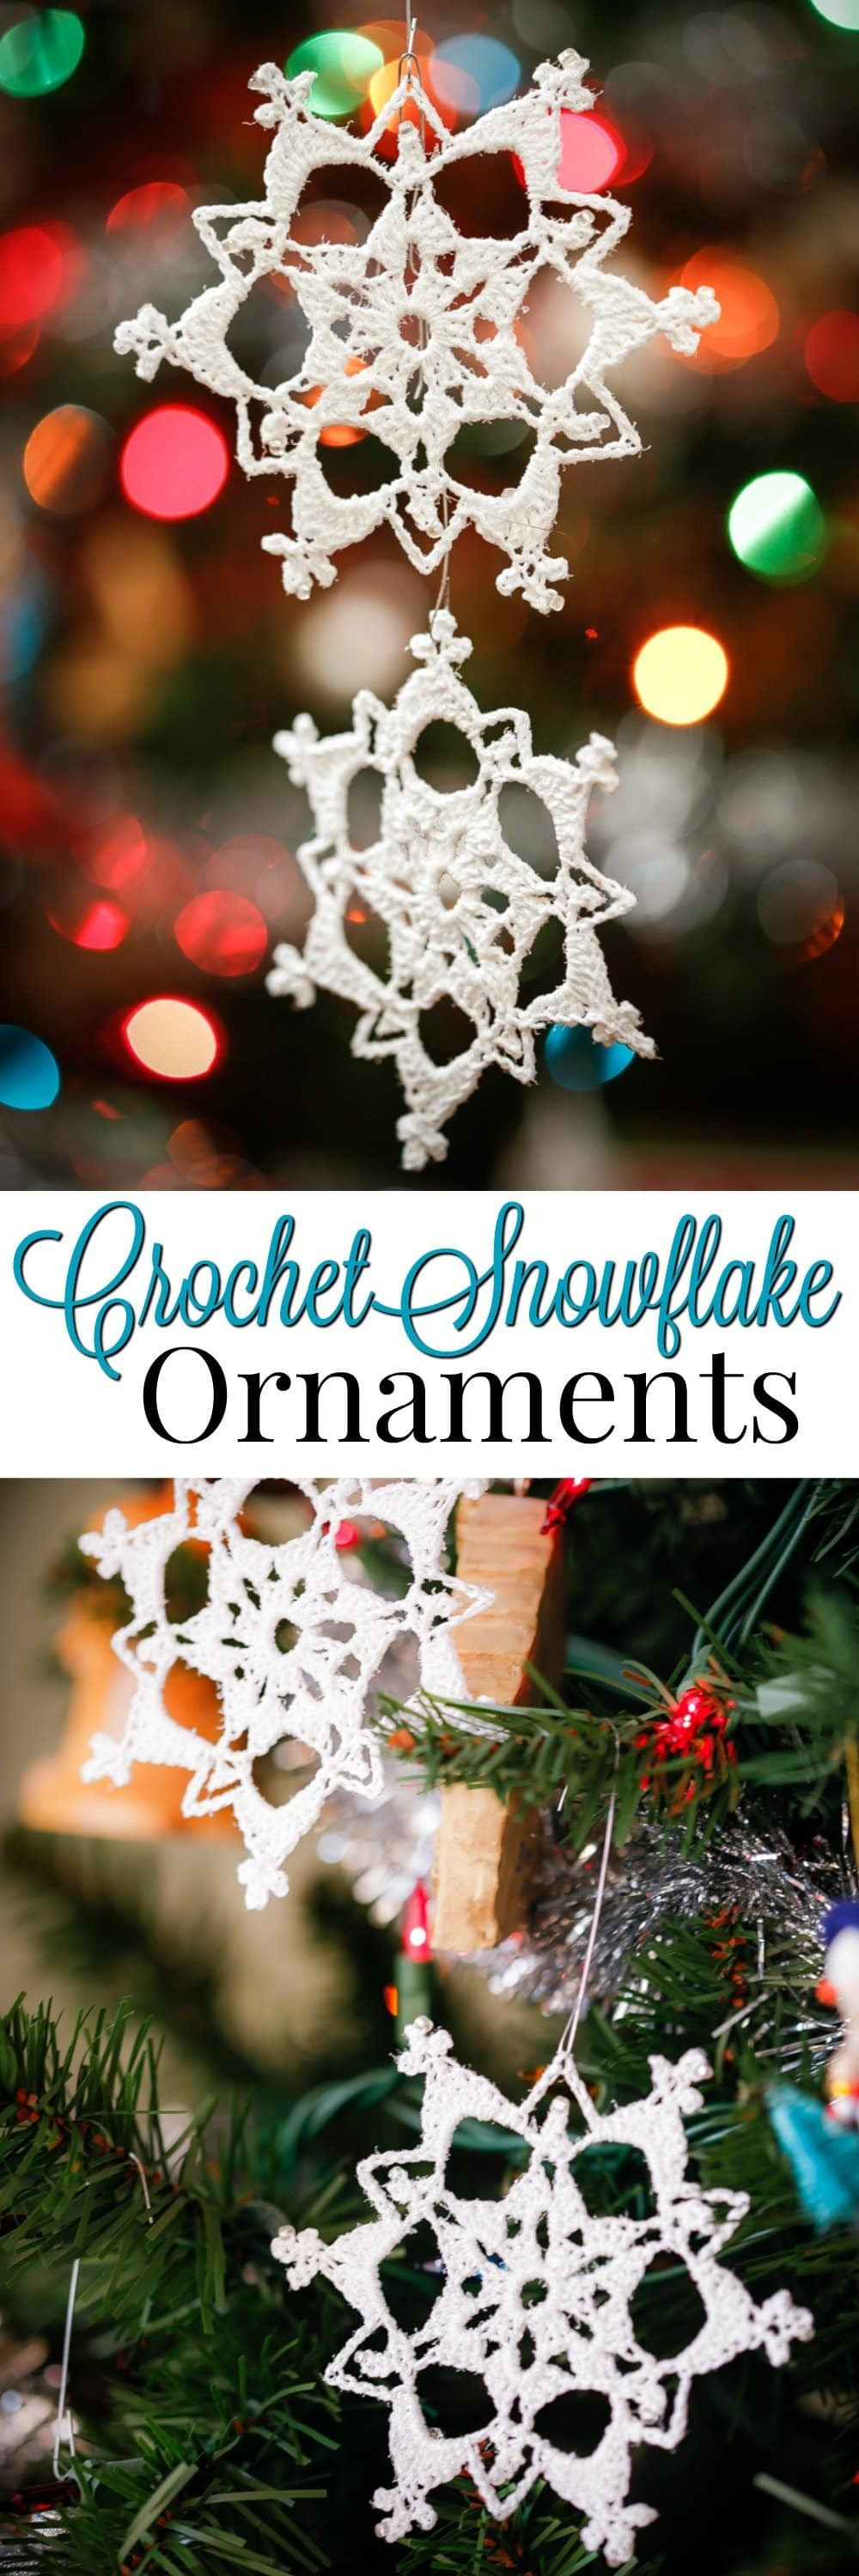 Crochet Snowflake ornaments Lovely Beautiful & Easy Lace Crochet Snowflake ornament Free Pattern Of Awesome 49 Photos Crochet Snowflake ornaments